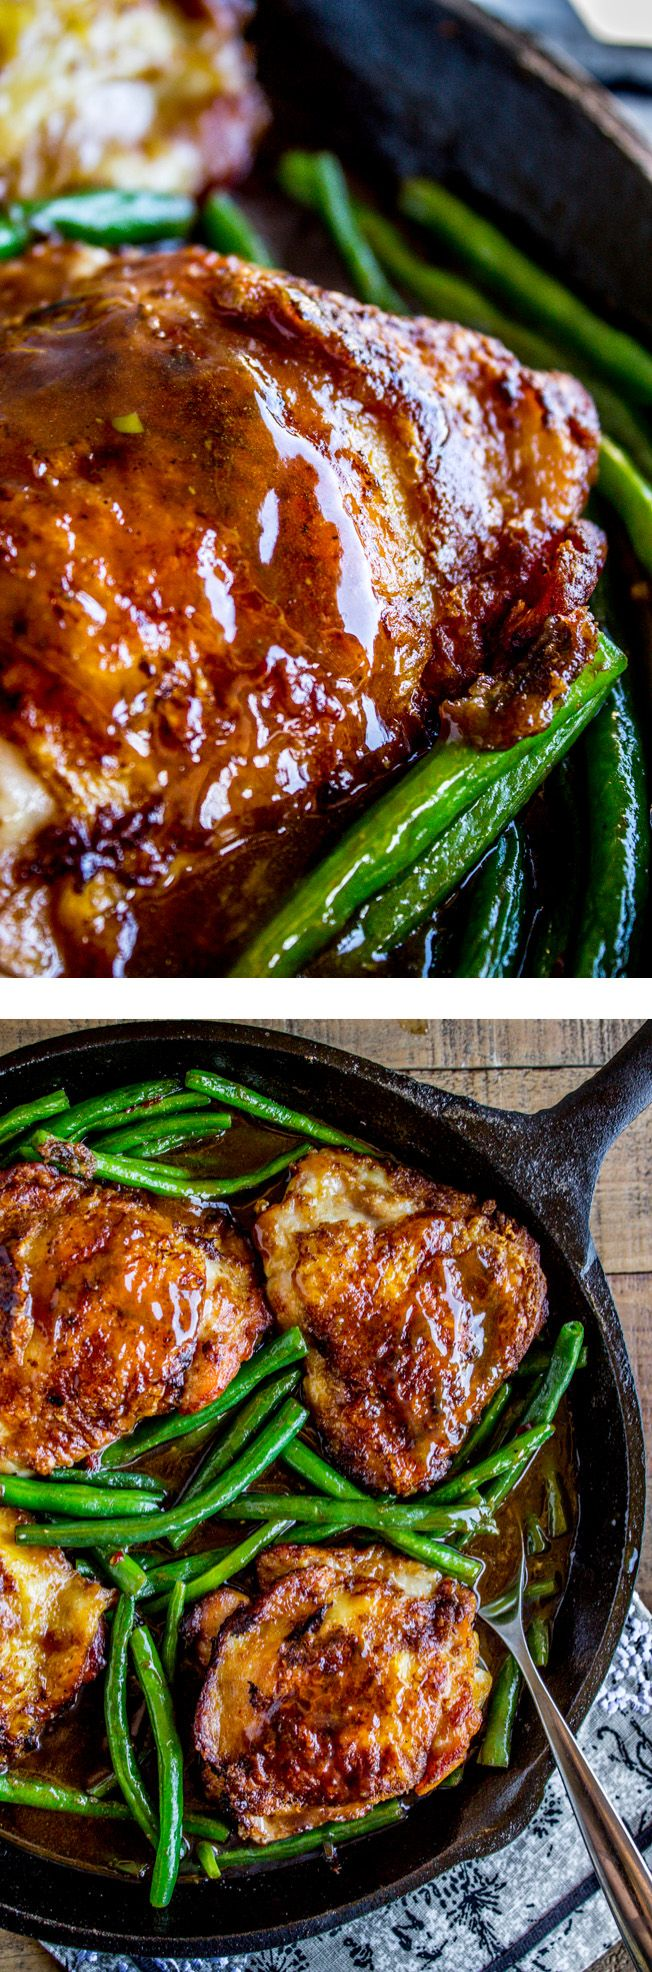 This Asian seared chicken is marinated in baking soda to get the most tender chicken! Stir fry green beans and you are on your way to a great low carb meal!